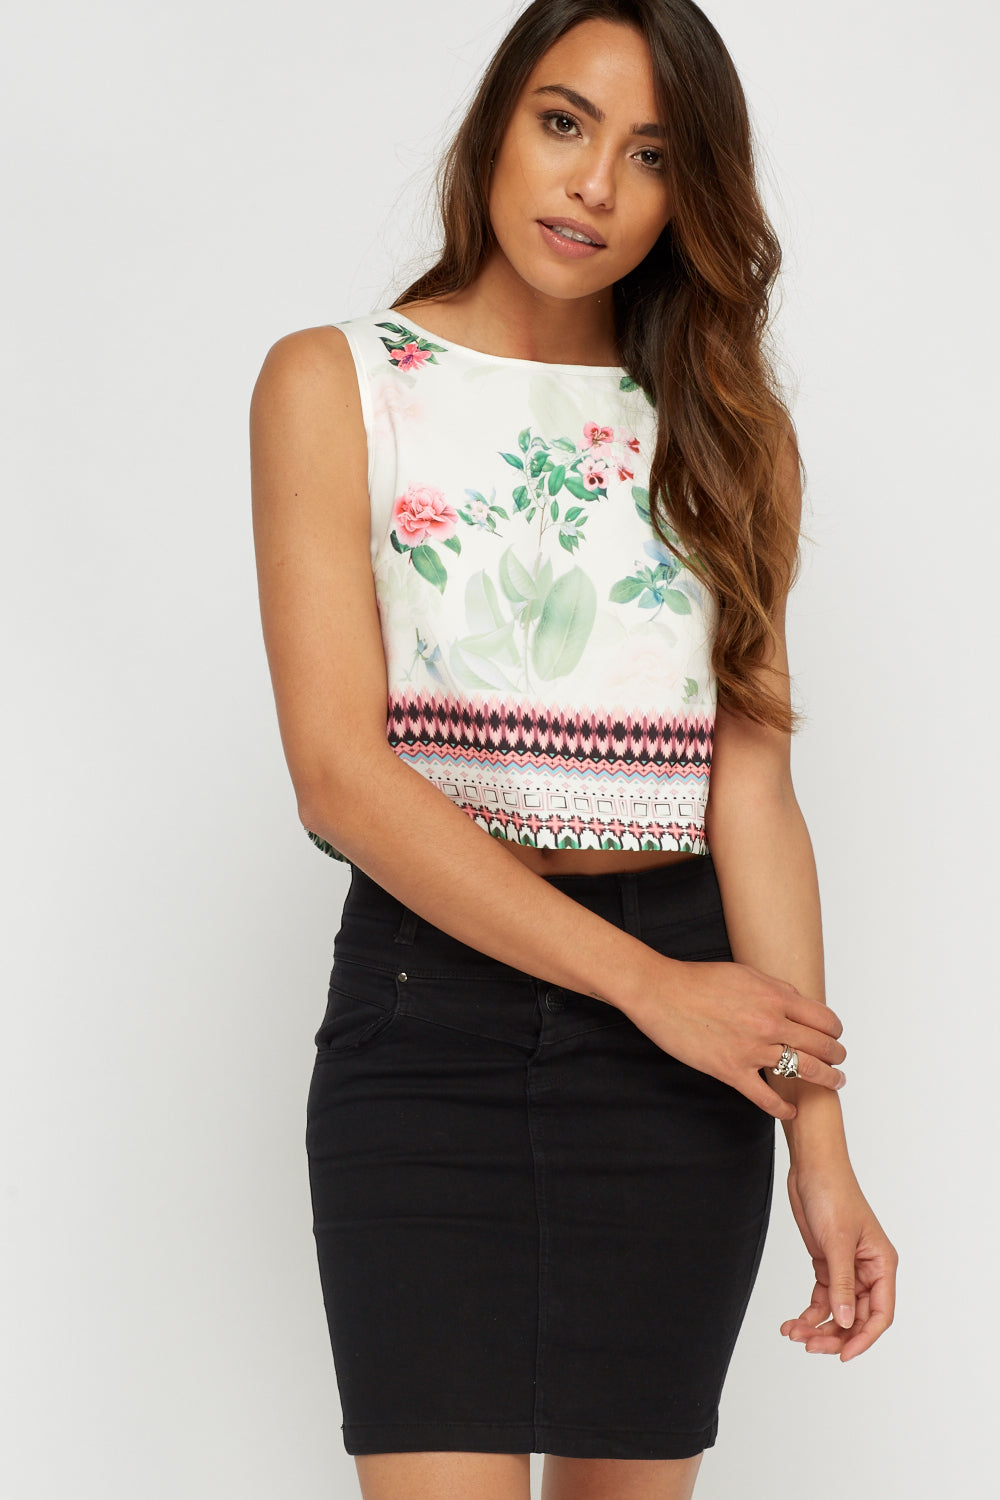 Crop top estampado - MiTiendaSecreta